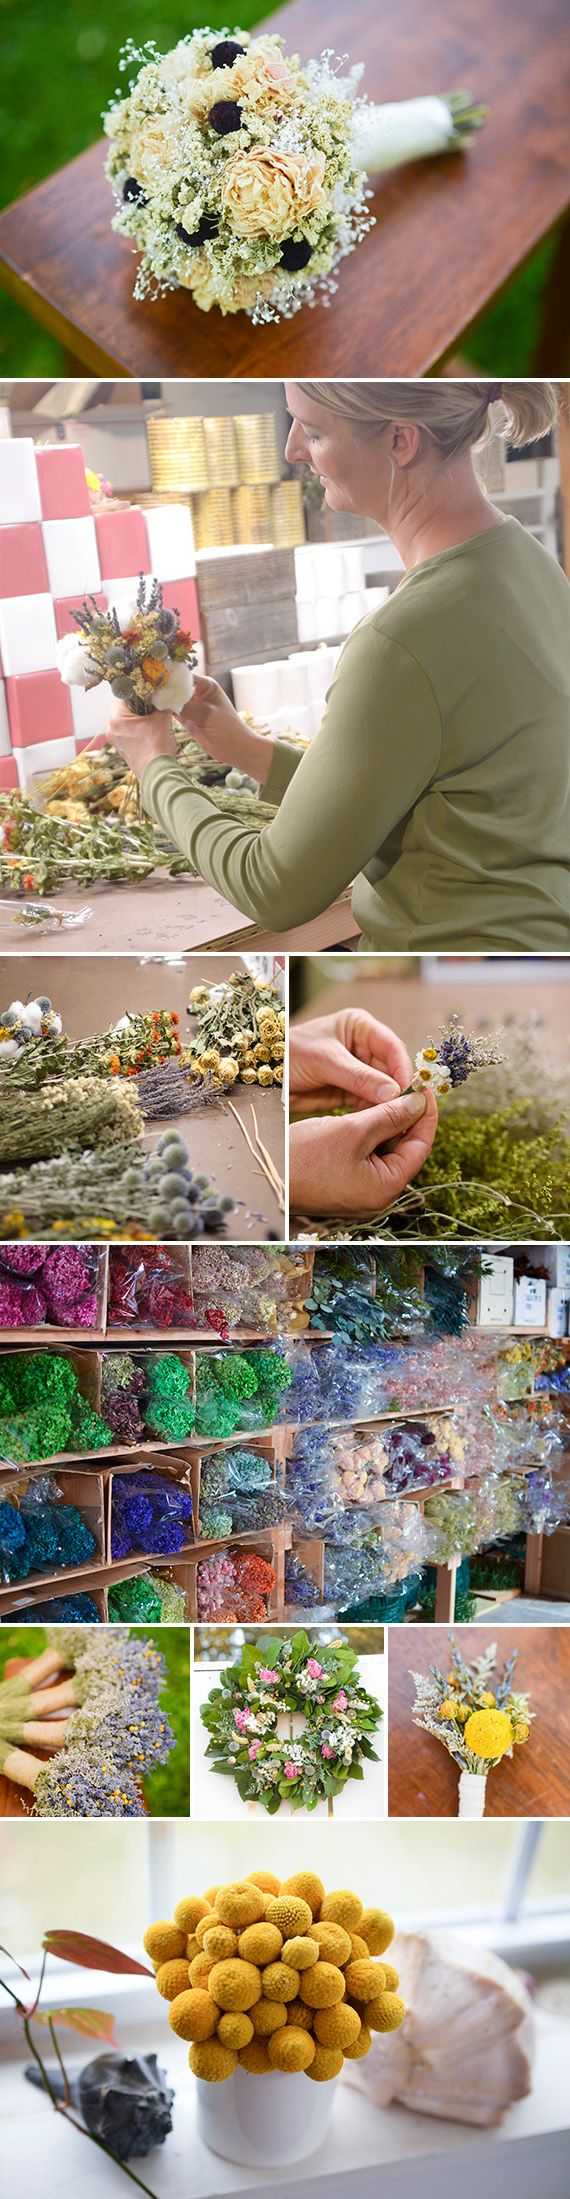 From flower farming to wedding bouquets, this nature-loving designer has done it all. Meet Rebekah